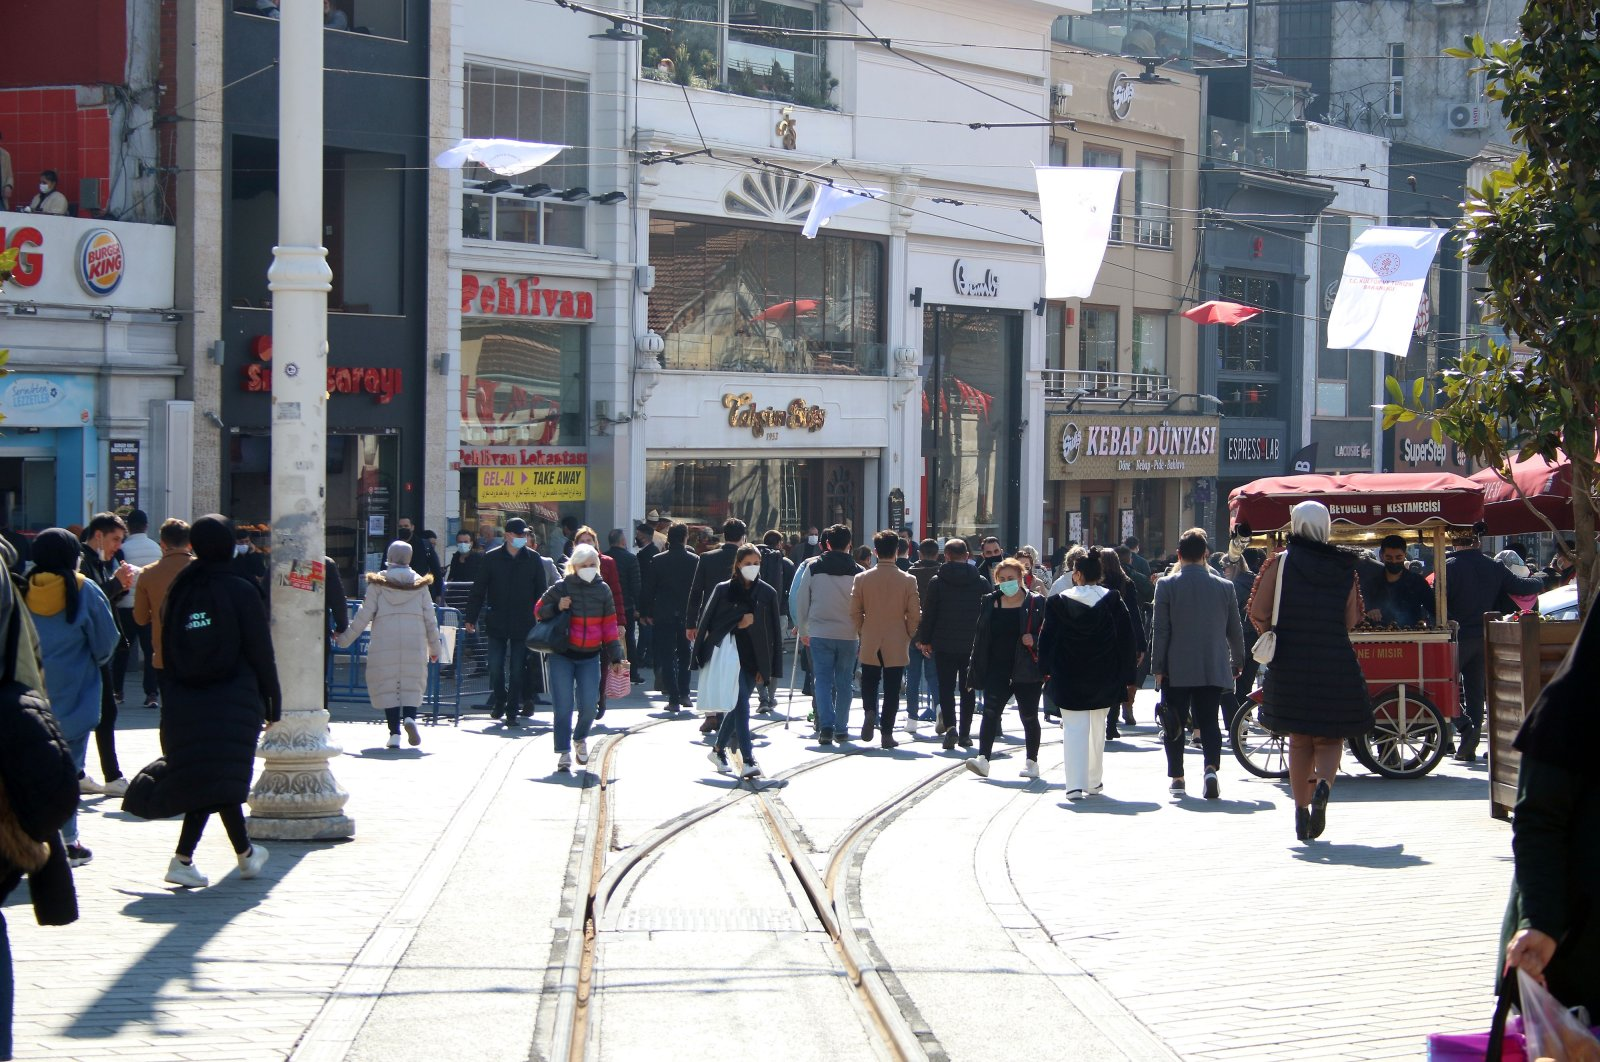 People shop and walk on Istiklal Avenue in Istanbul's Beyoğlu district on Mar. 13, 2021 (DHA Photo)